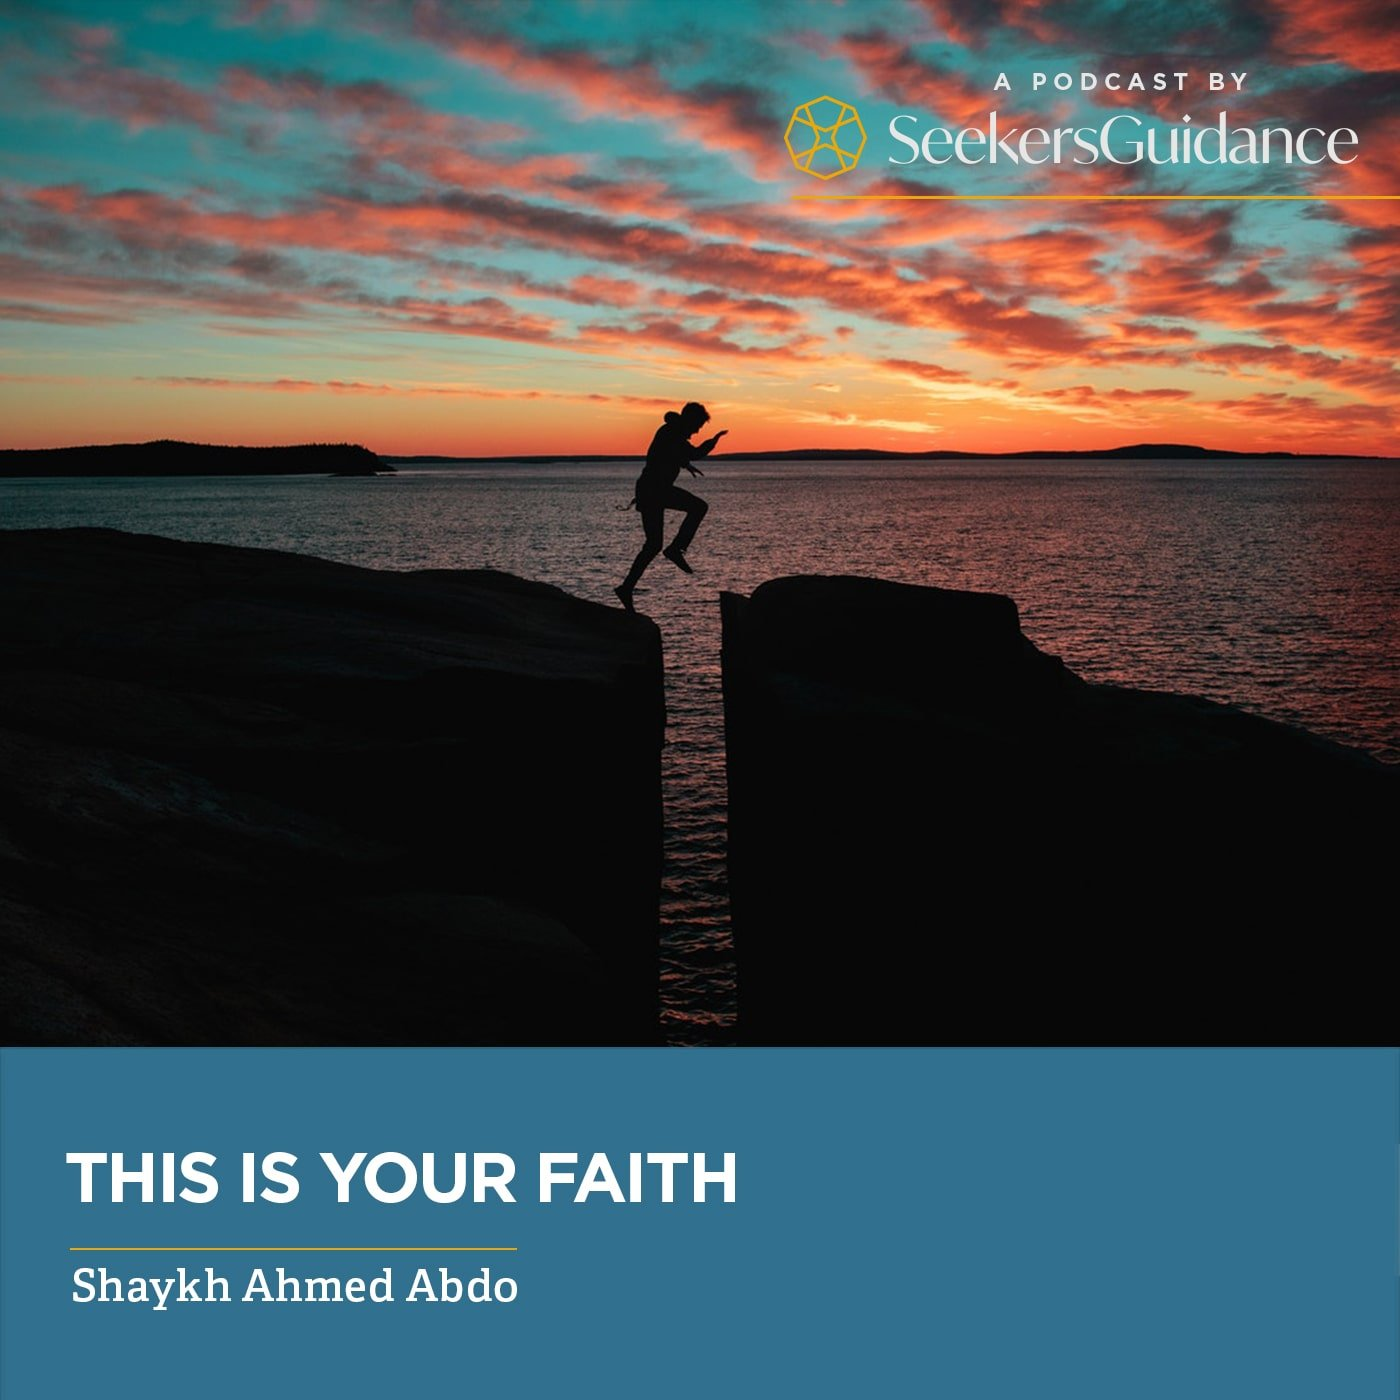 This is Your Faith with Shaykh Ahmed Abdo